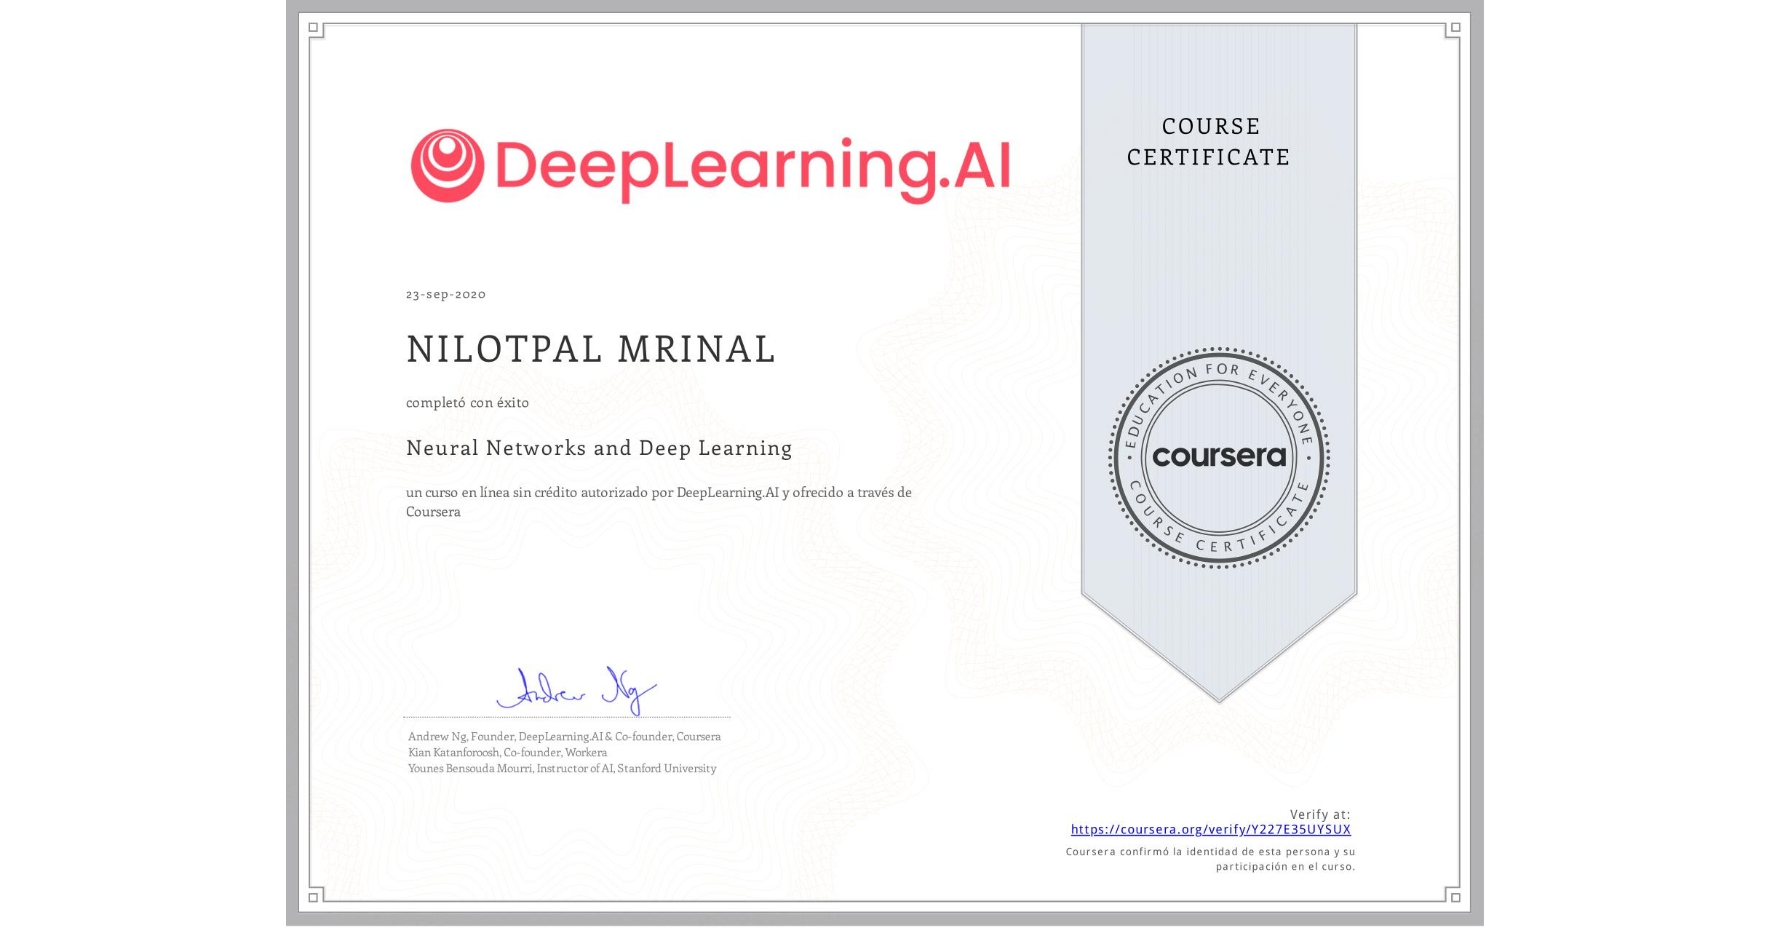 View certificate for NILOTPAL MRINAL, Neural Networks and Deep Learning, an online non-credit course authorized by DeepLearning.AI and offered through Coursera